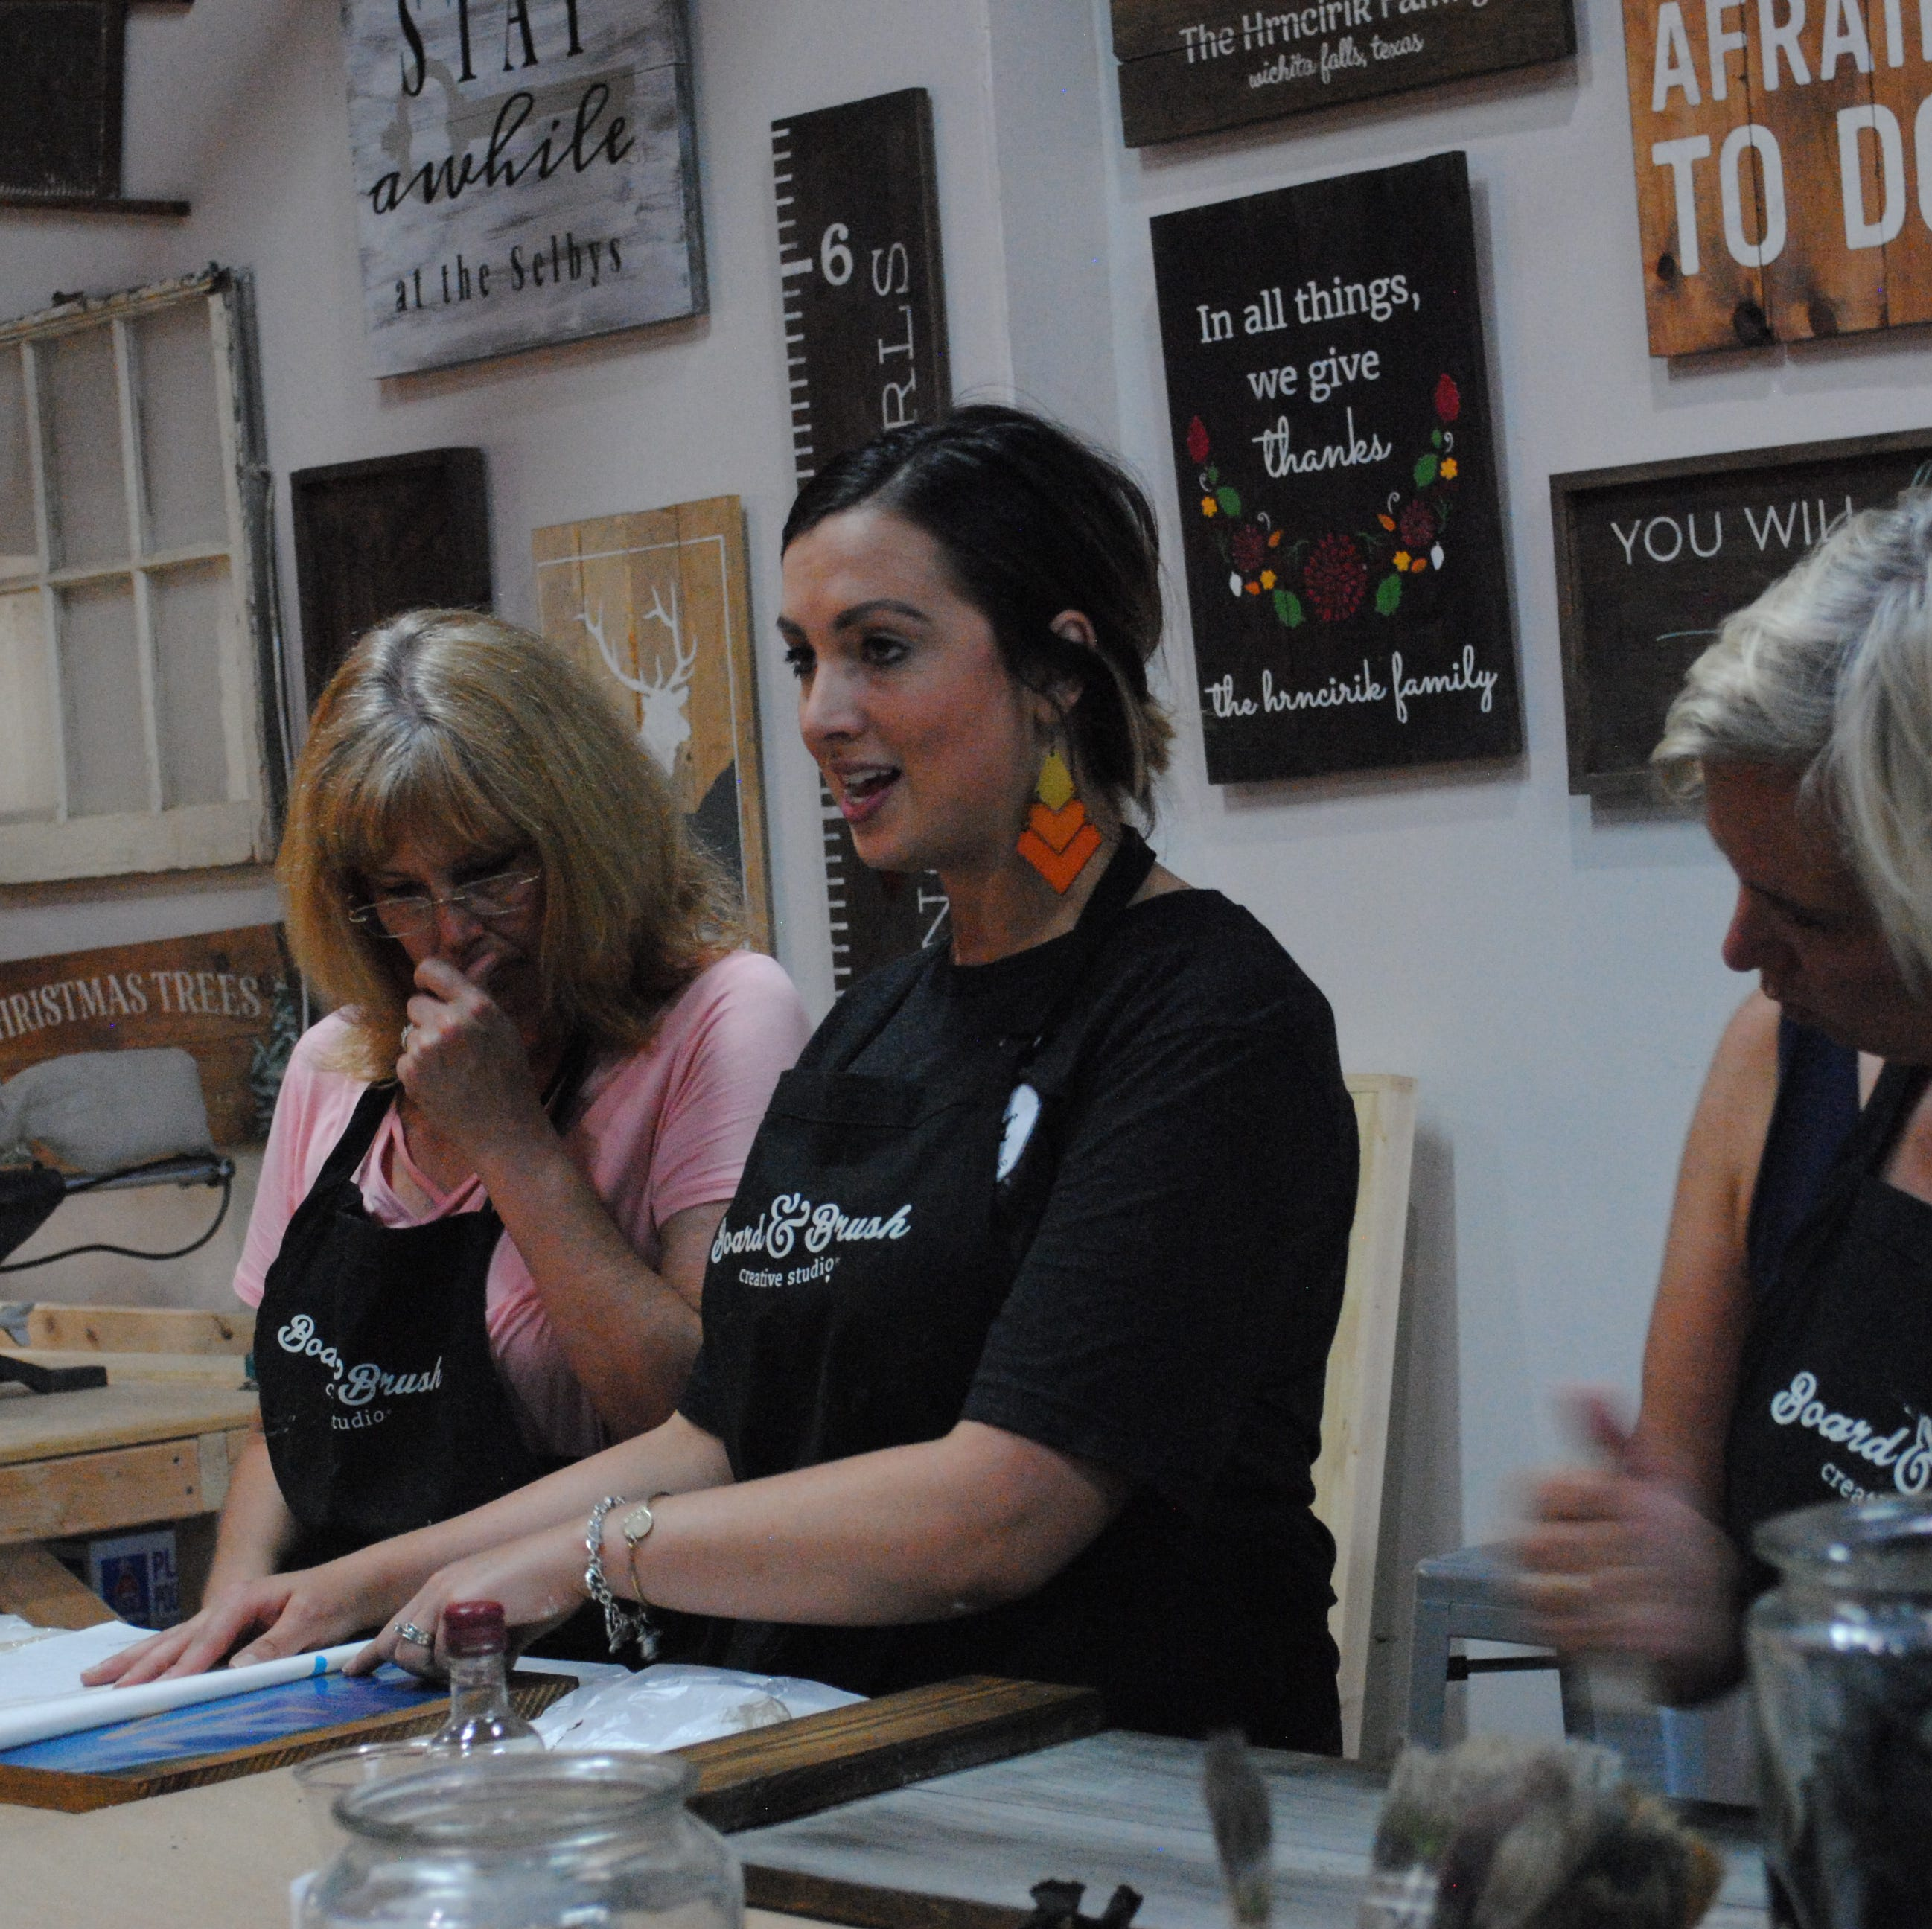 Hard to get too 'board' at city's latest craft studio